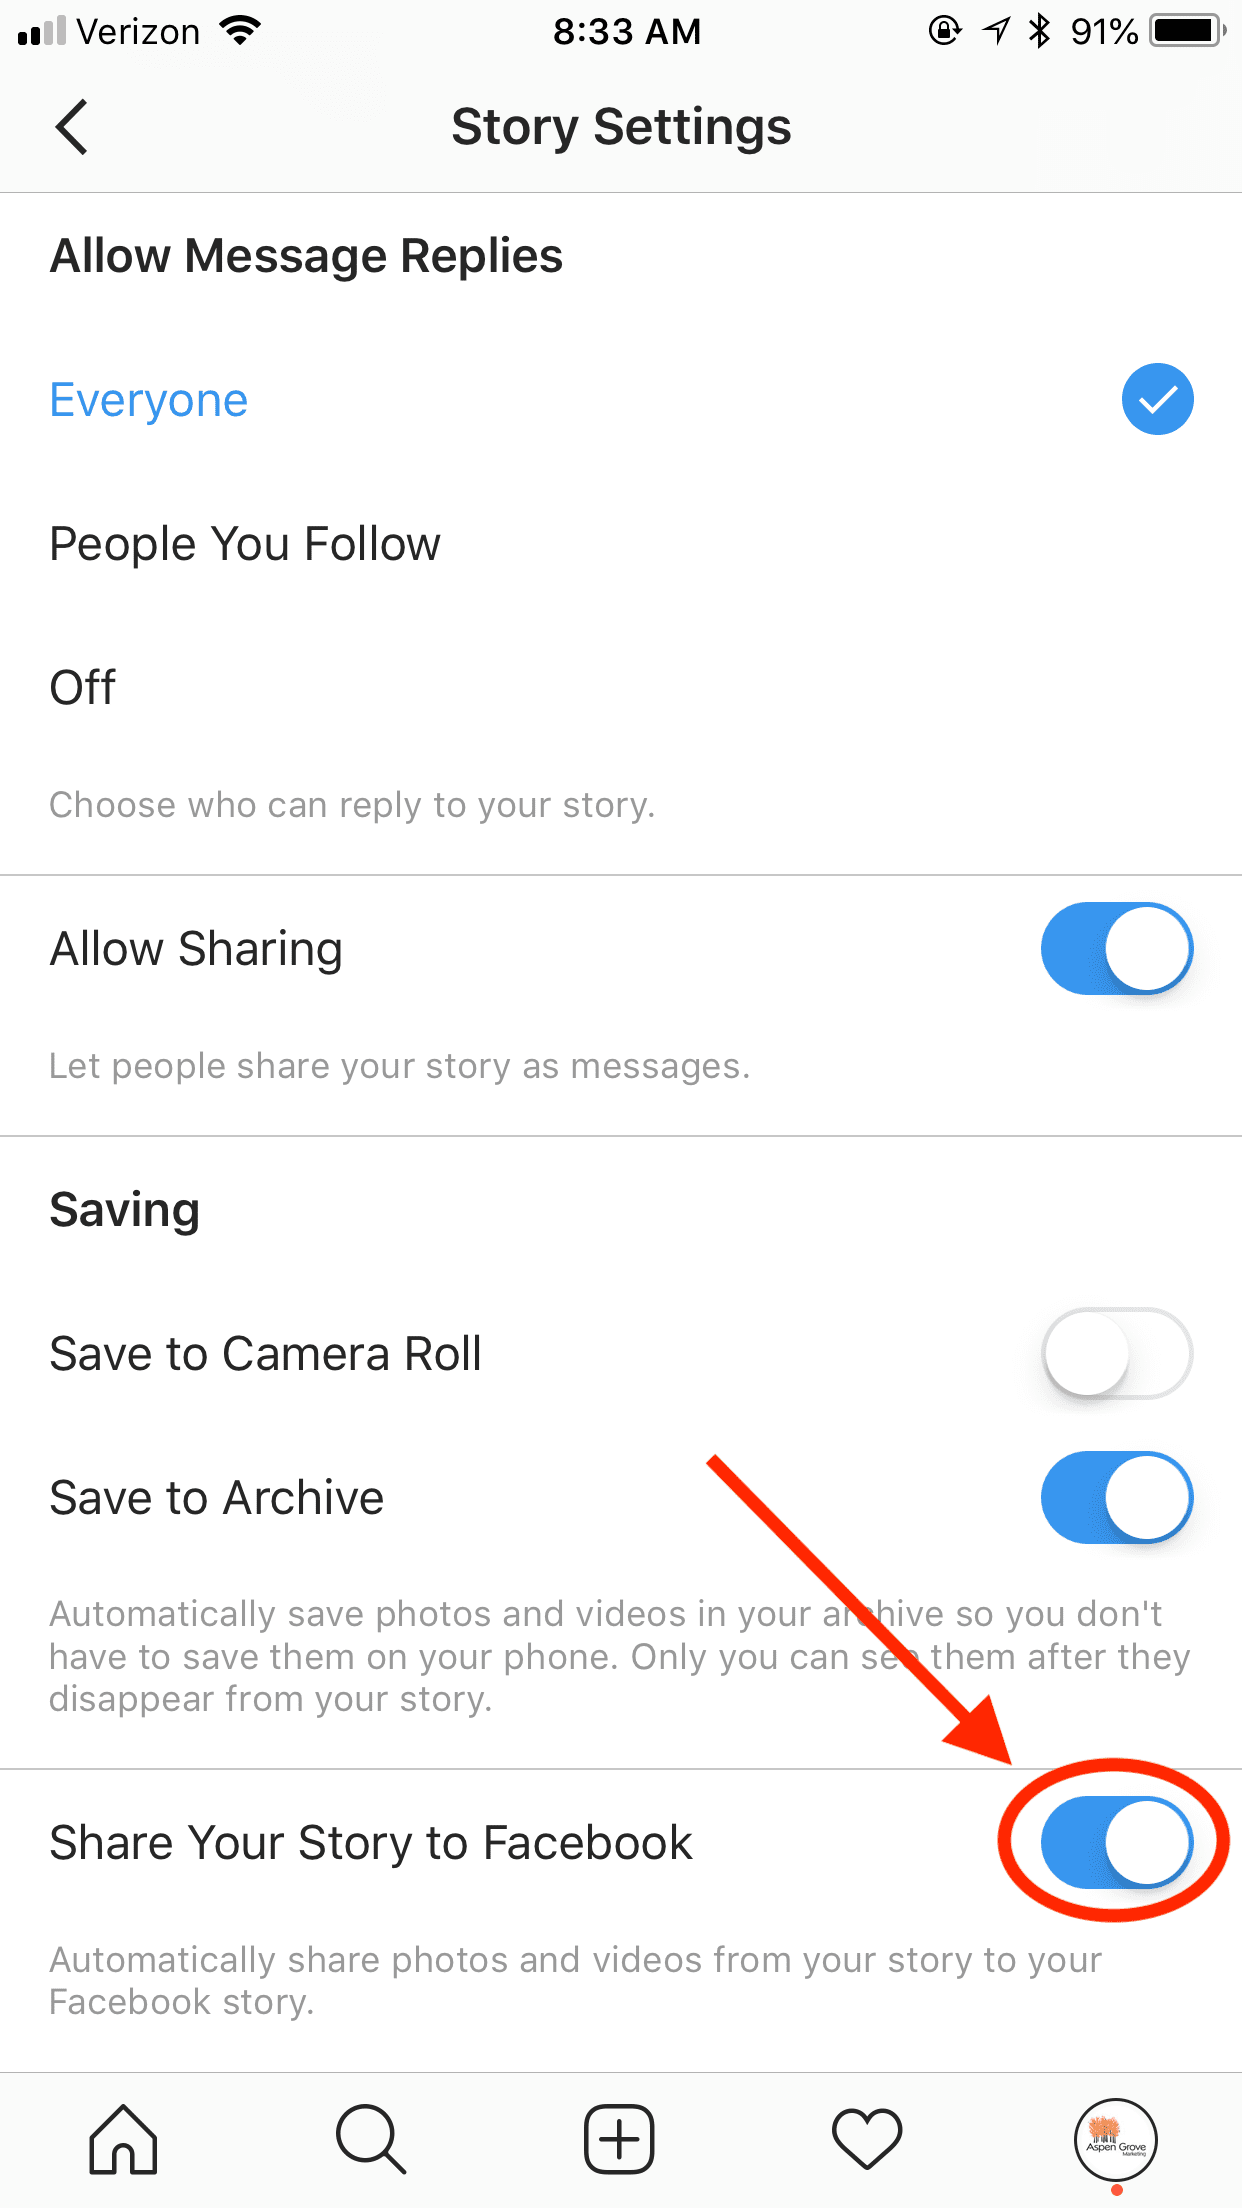 Facebook Stories: What They Are, How to Create Them, and More